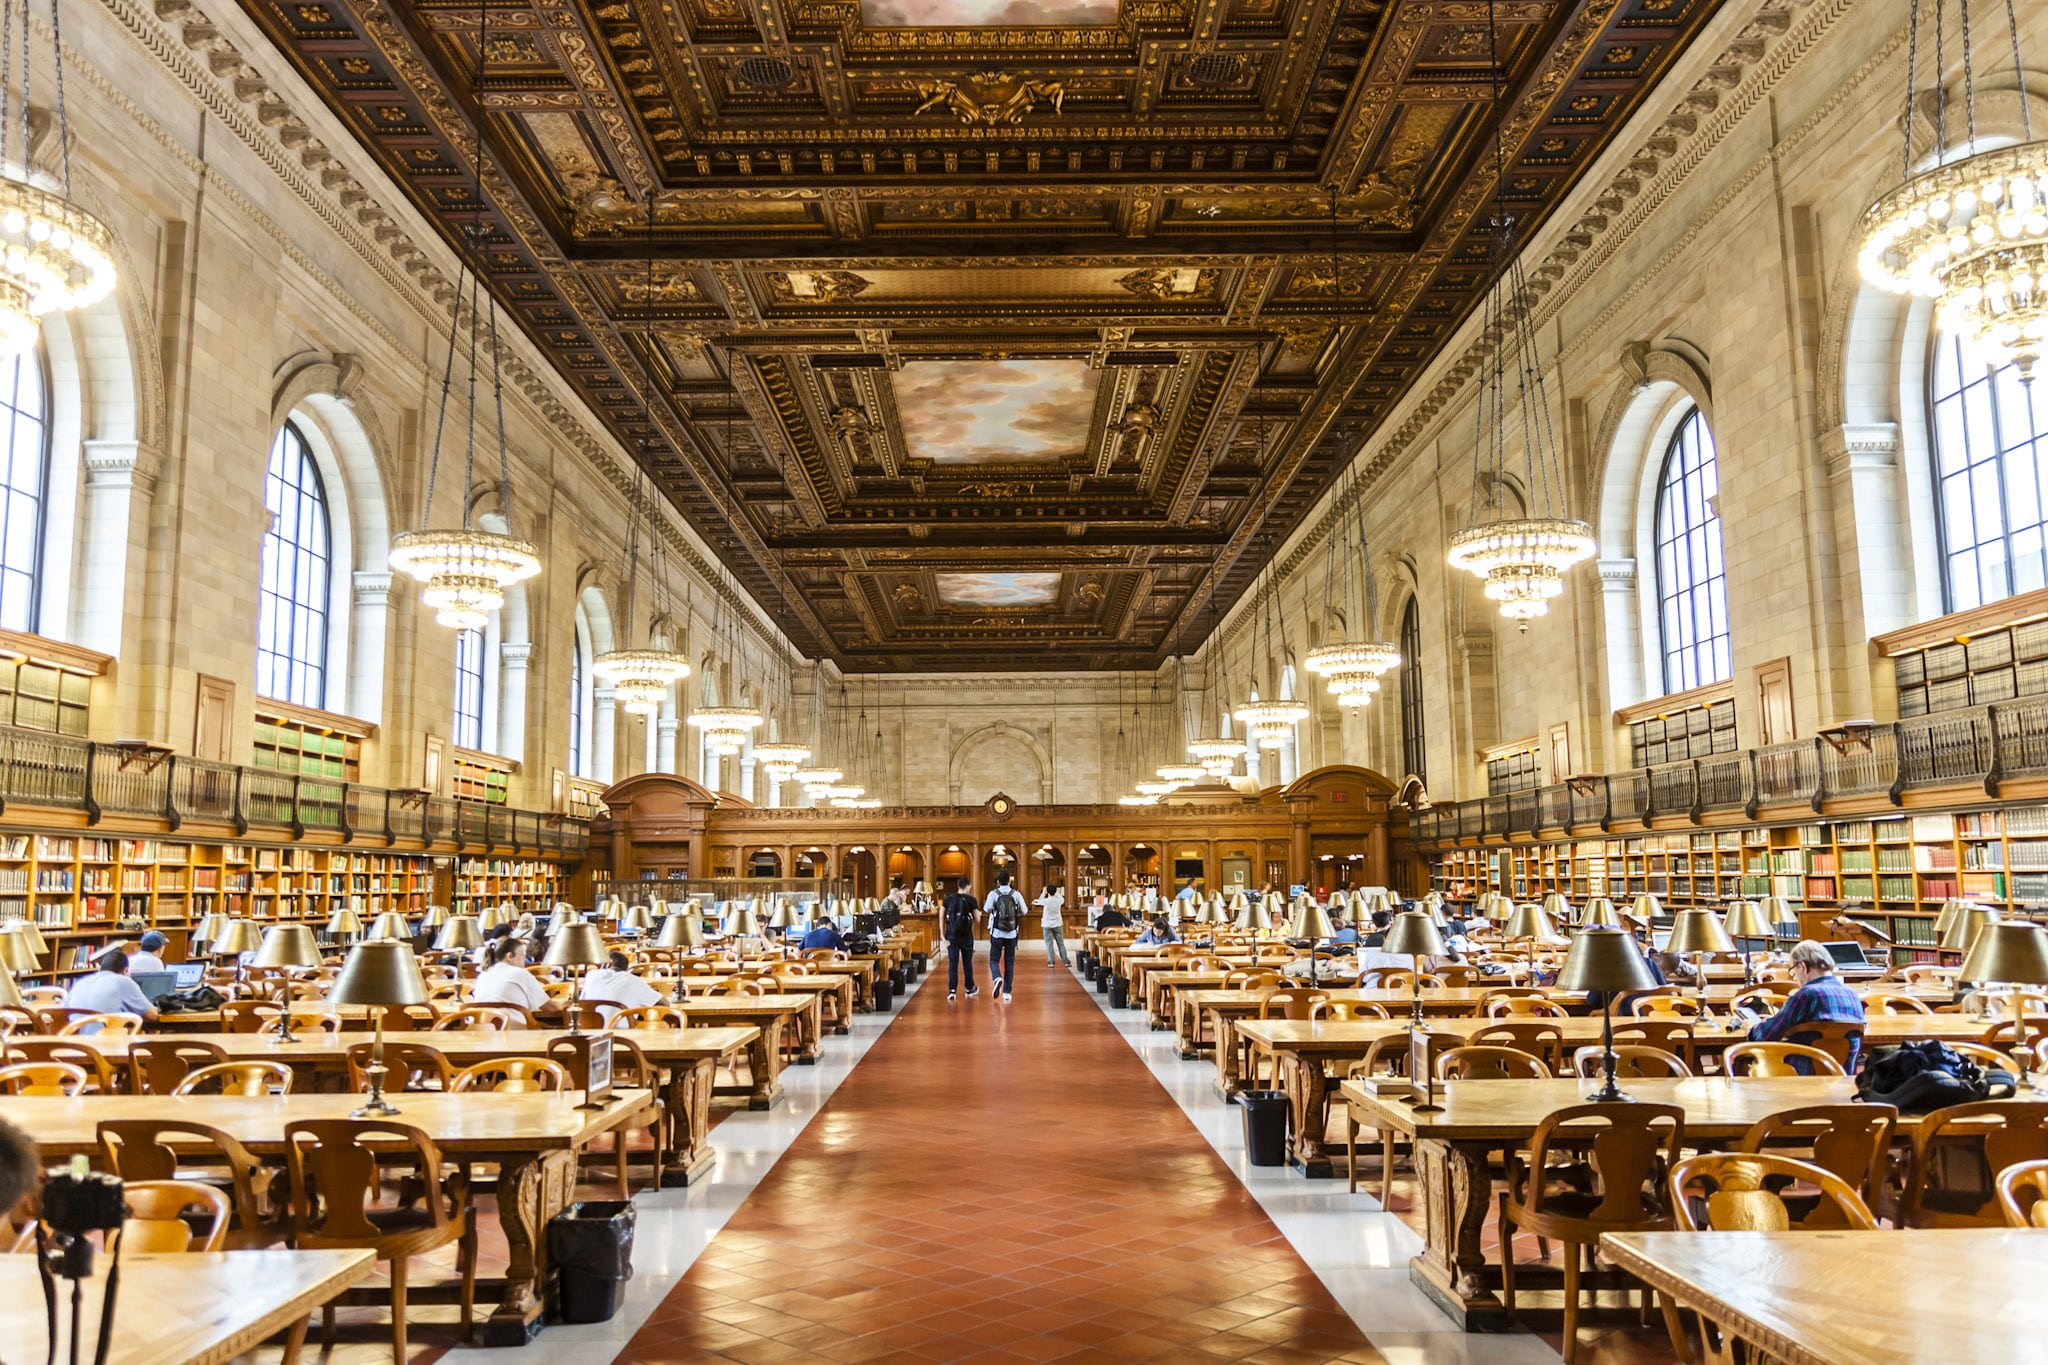 The New York Public Library is one of the coolest places to visit in New York City